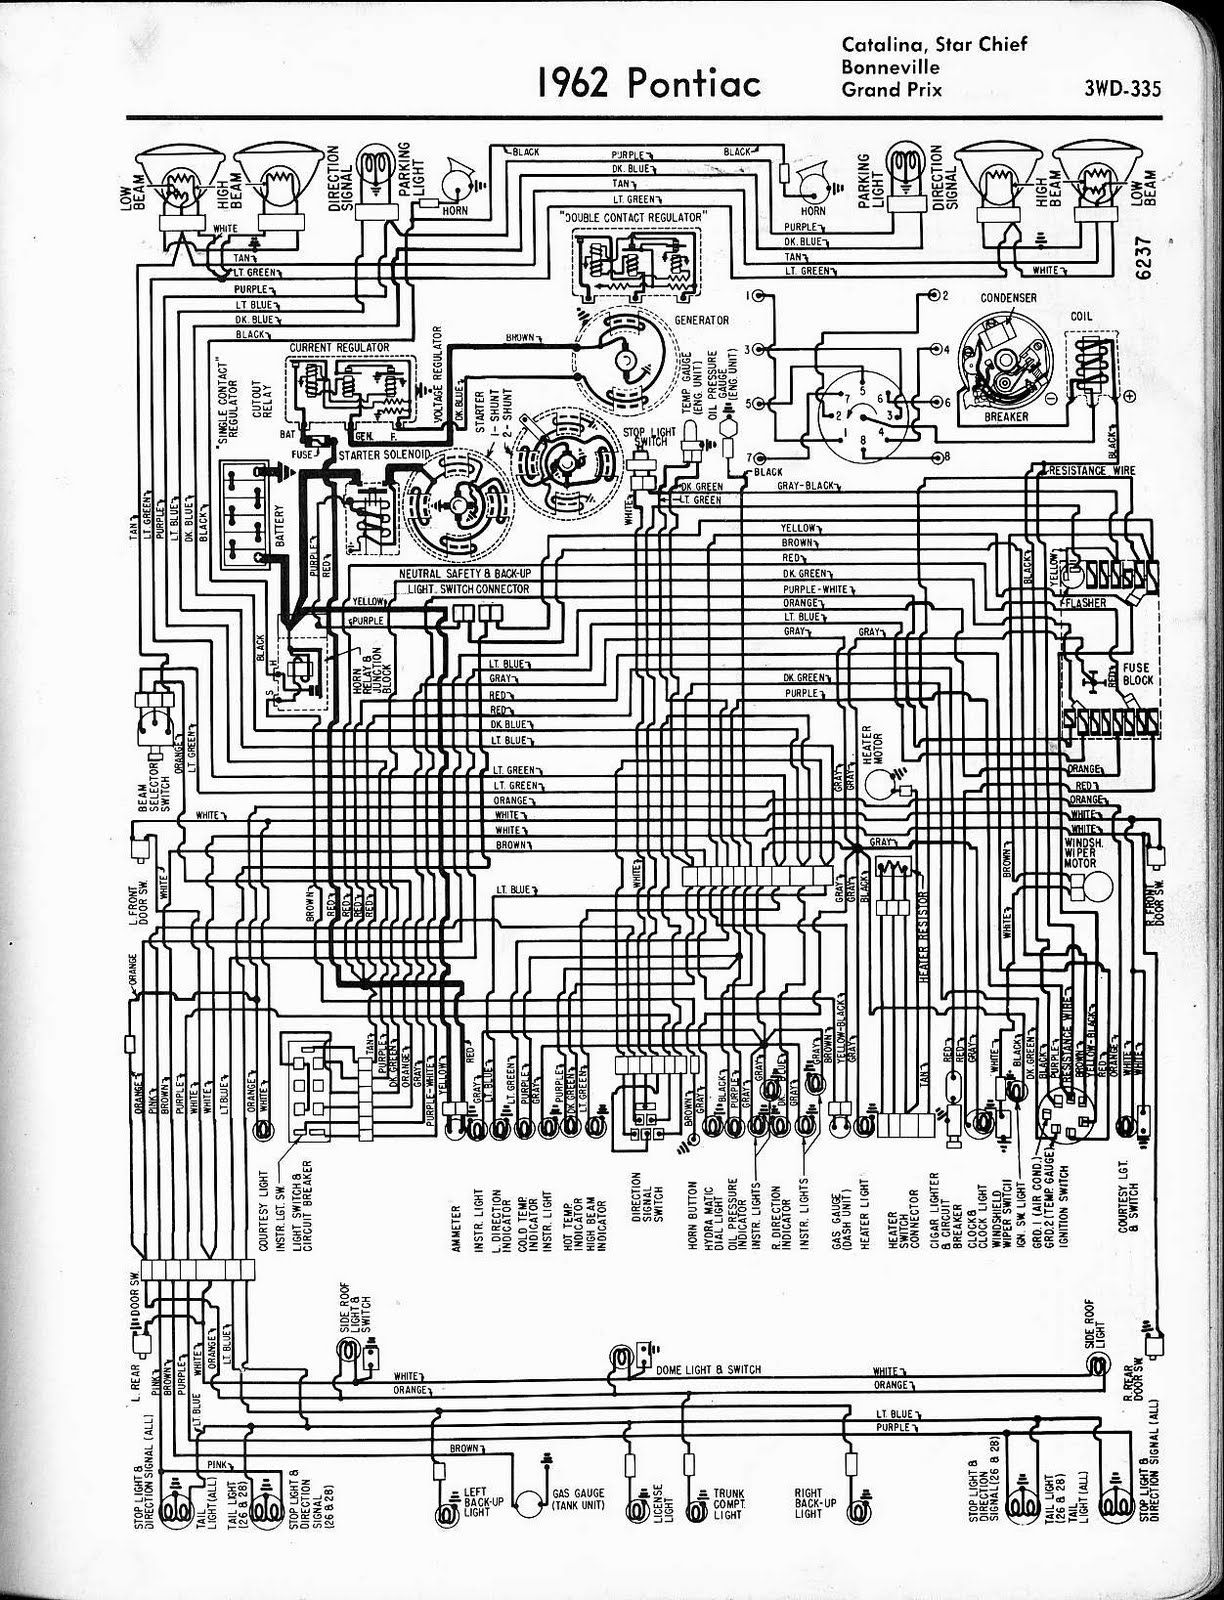 2005 Vibe Fuse Box Wiring Library Pontiac 1962 Diagram Diagrams Rh Boltsoft Parts 2003